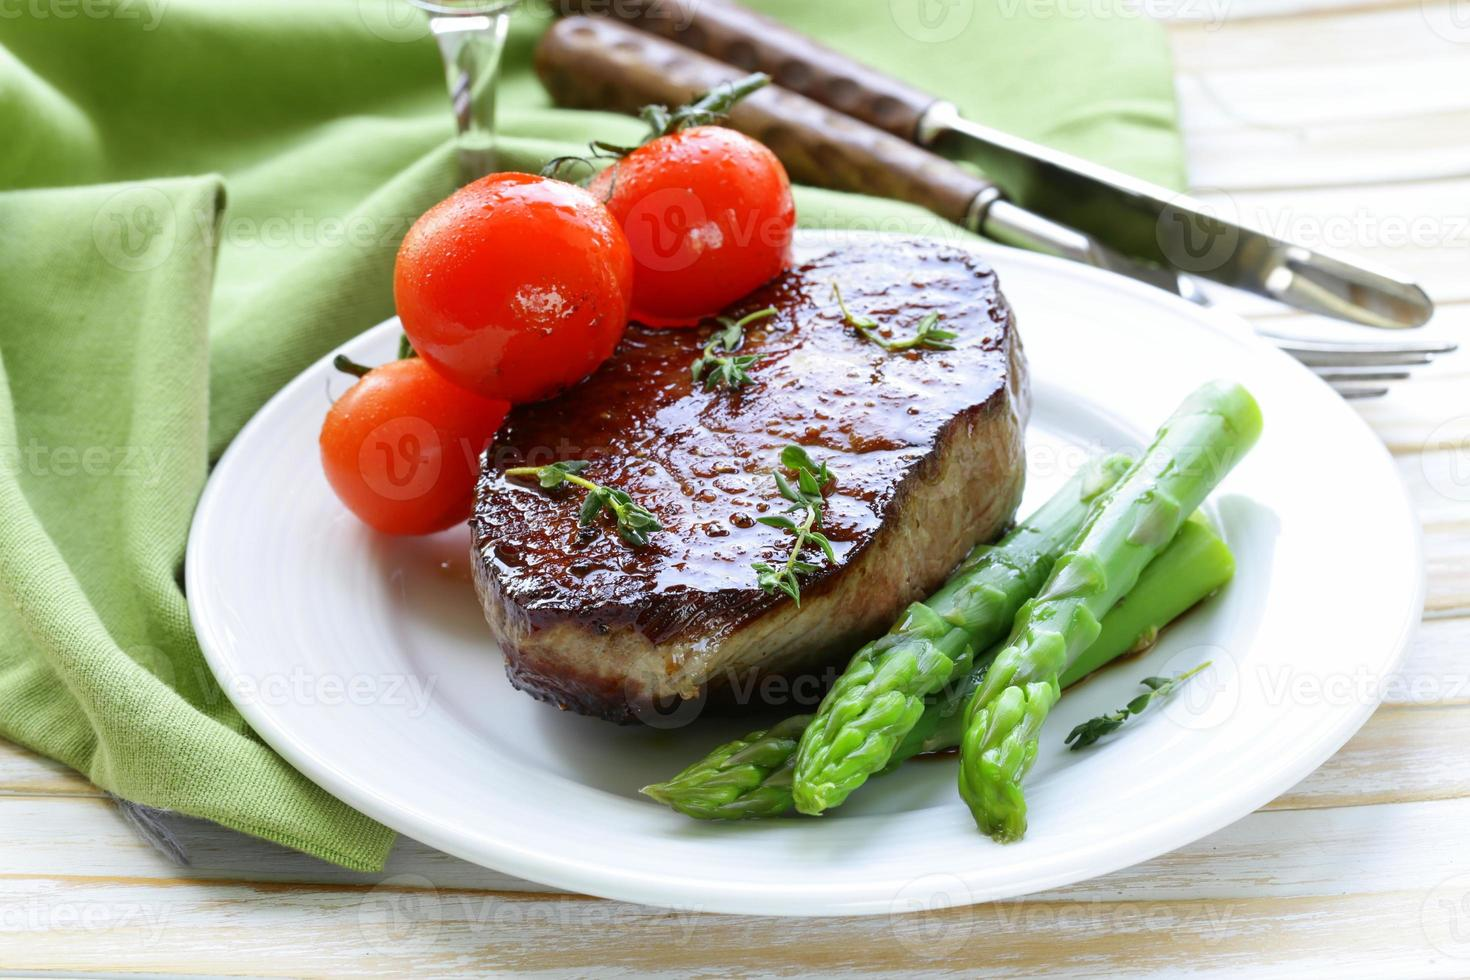 grilled meat beef steak with vegetable garnish (asparagus and tomatoes) photo